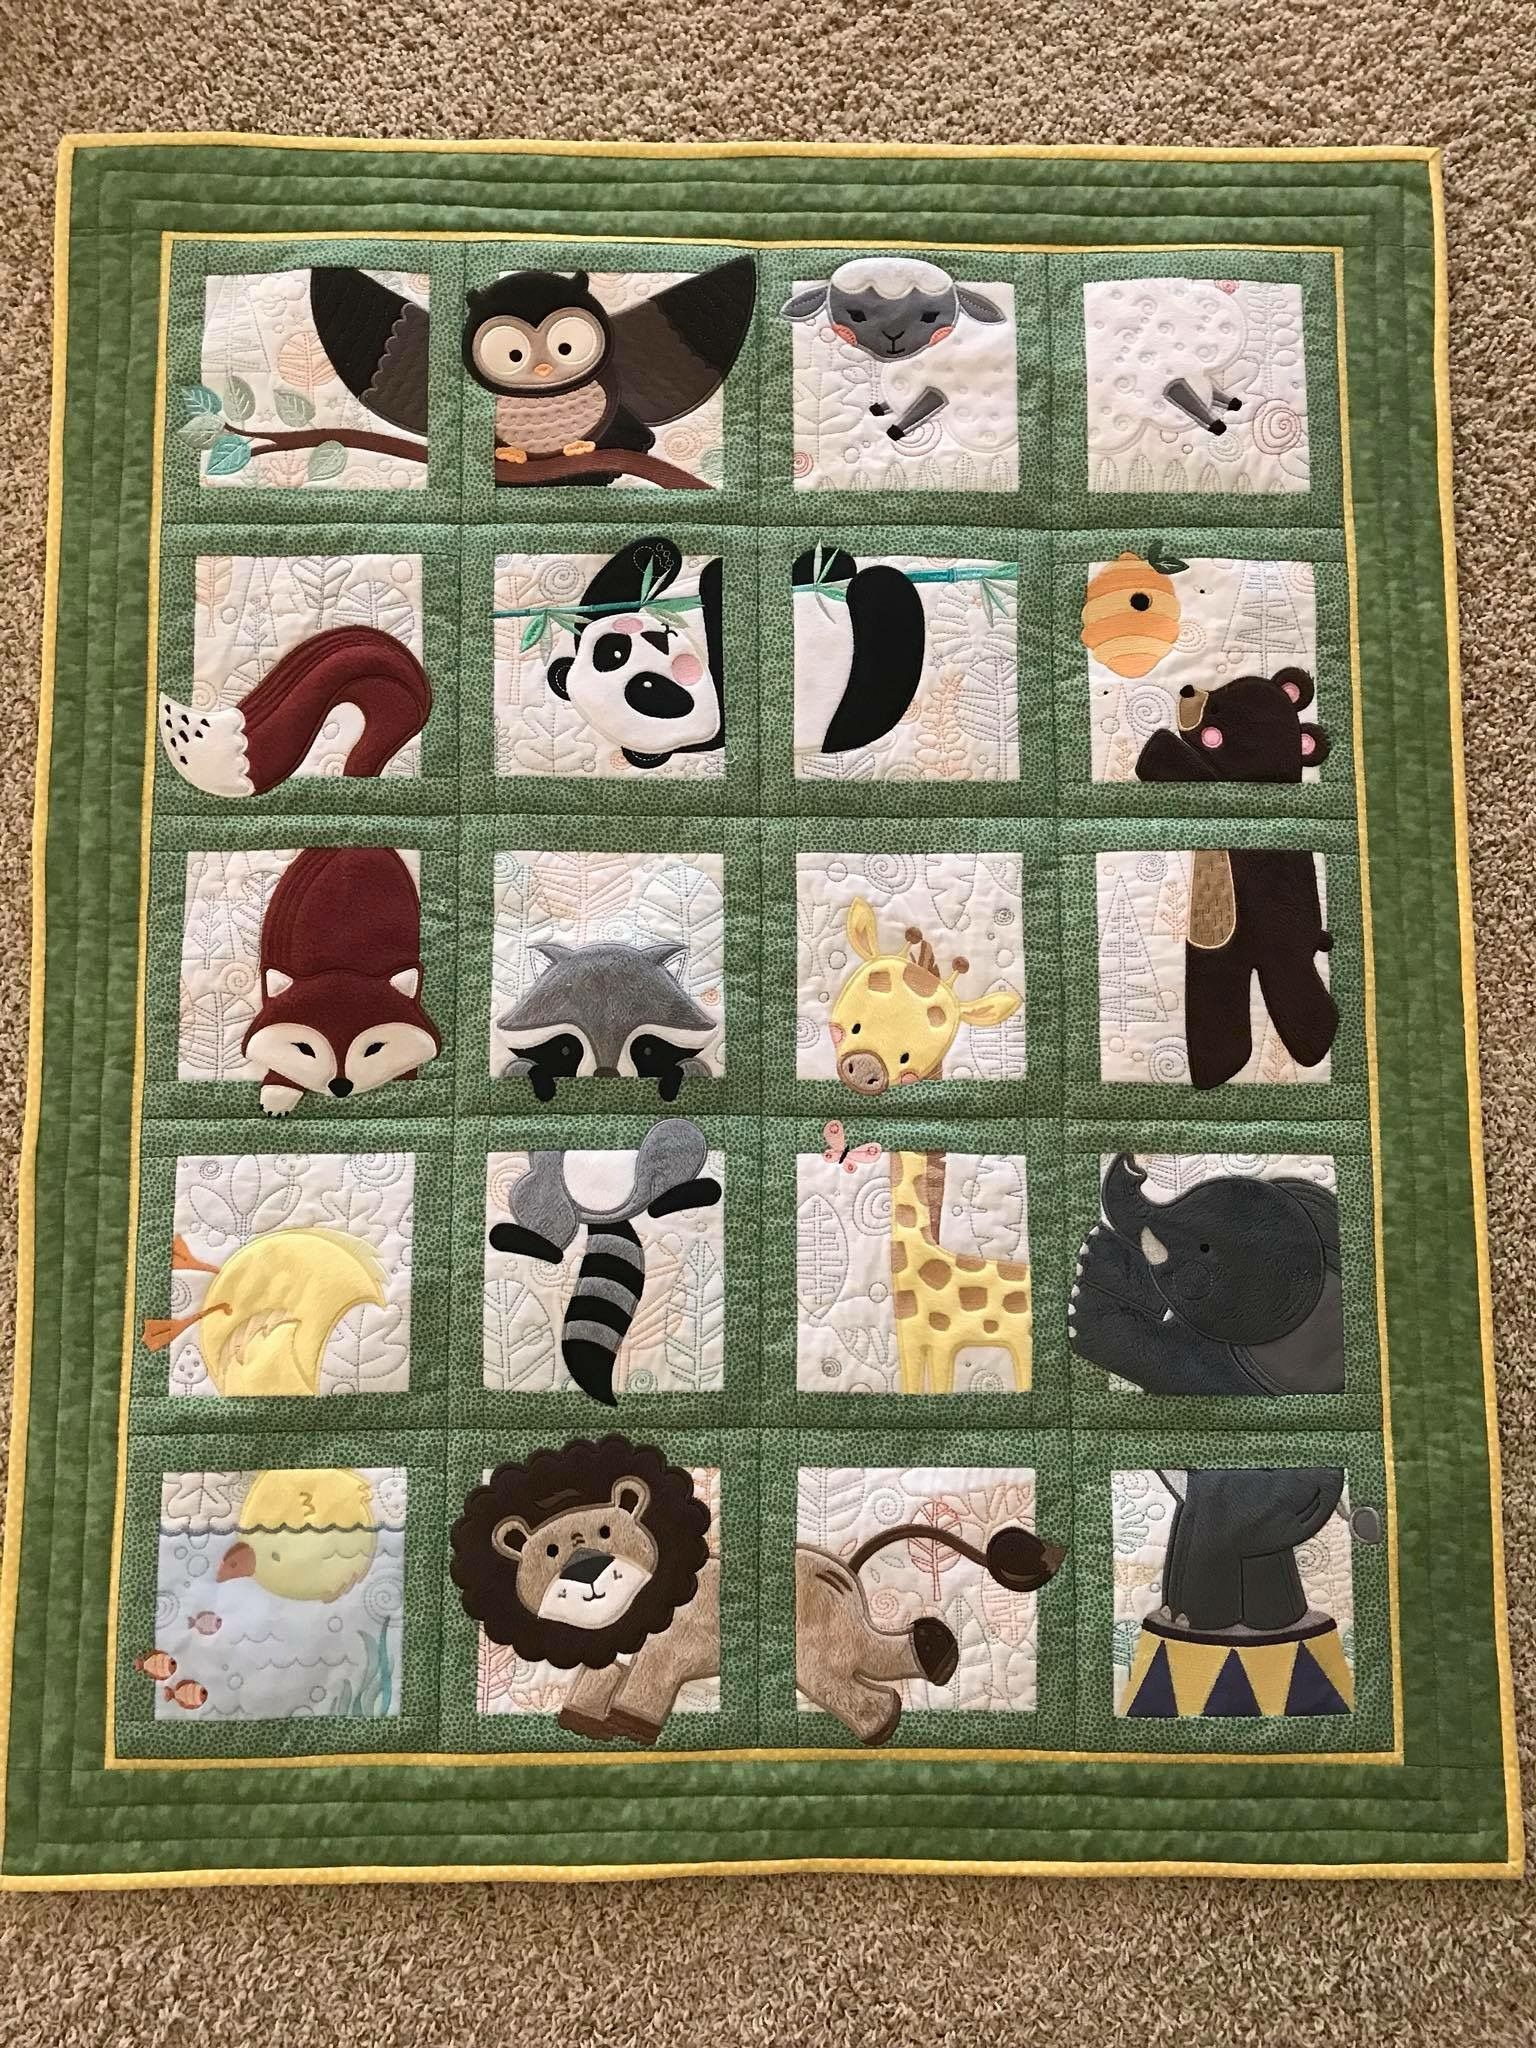 Animal Baby Quilt Patterns : animal, quilt, patterns, Yvette, Animal, Adventure, Quilt,, Quilts,, Childrens, Quilts